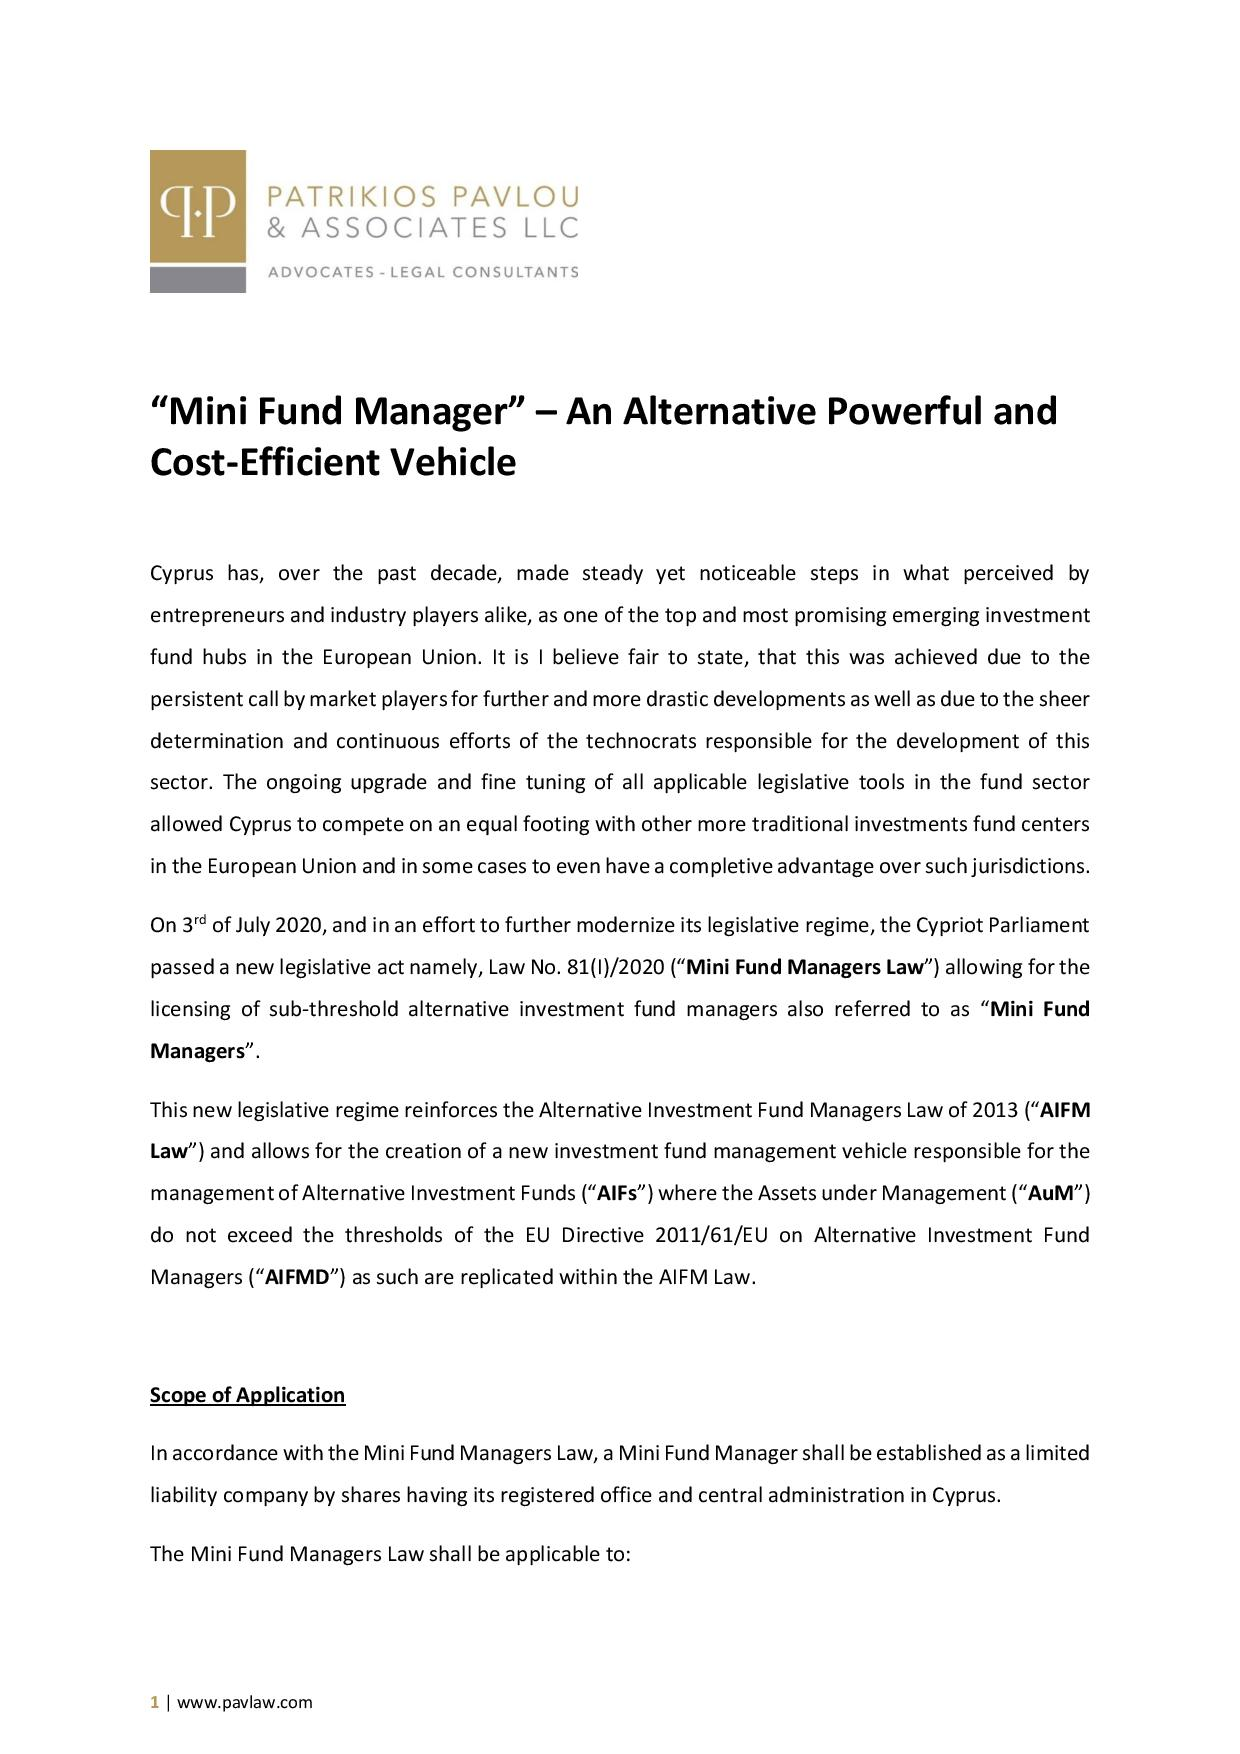 "Patrikios Pavlou & Associates LLC: ""Mini Fund Manager"" – An Alternative Powerful and Cost-Efficient Vehicle"